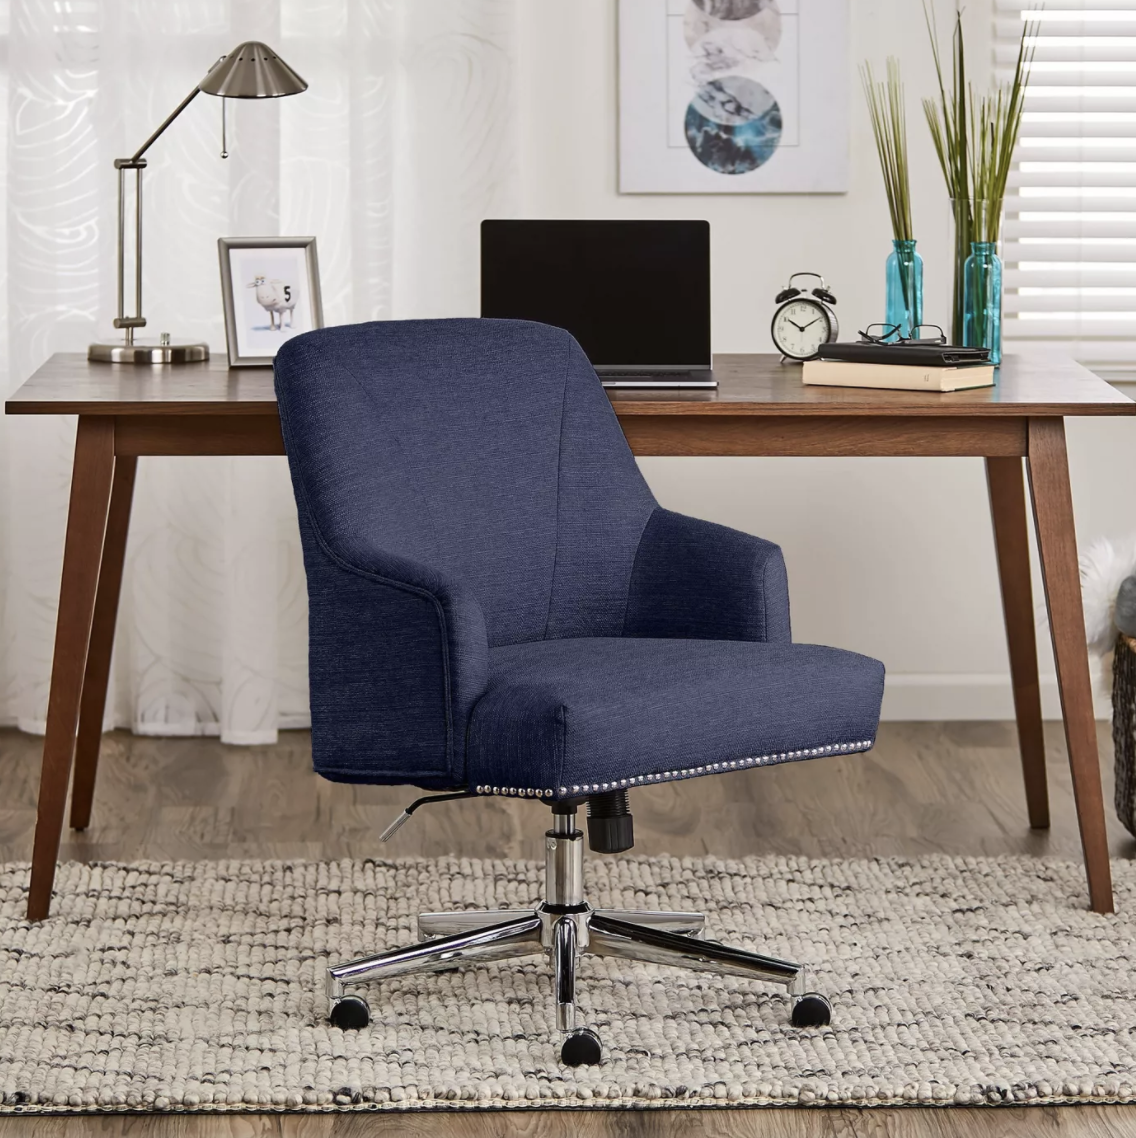 The navy office chair with studs around the rim of the chair in a home office